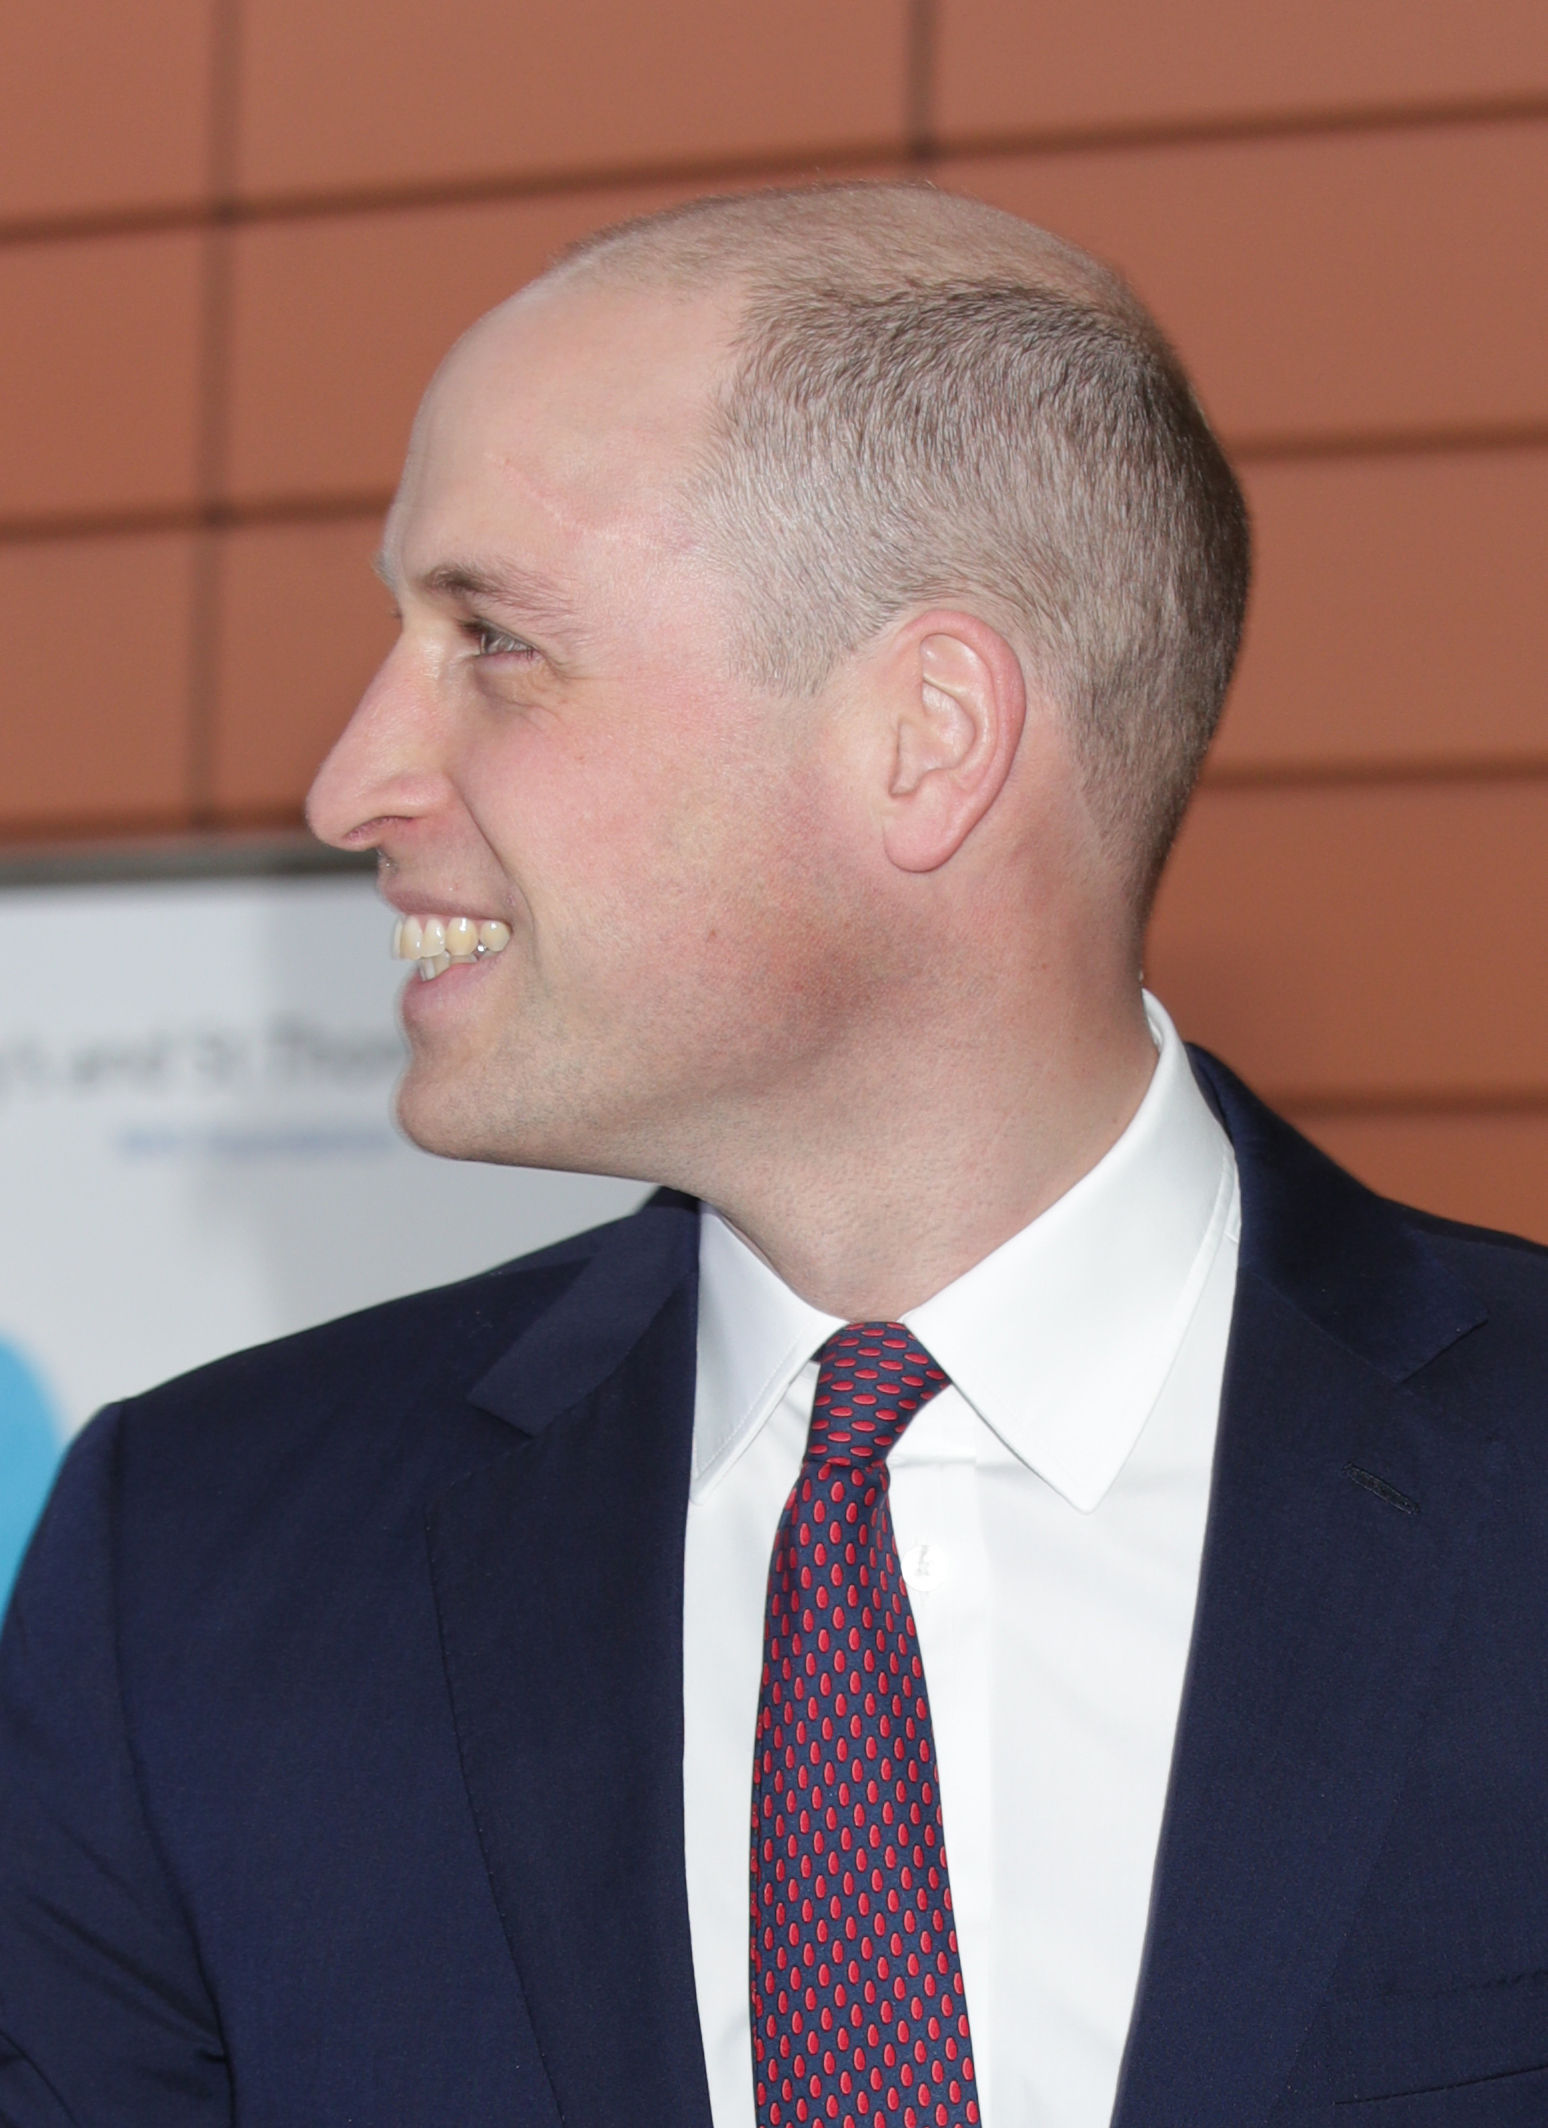 Prince William new haircut